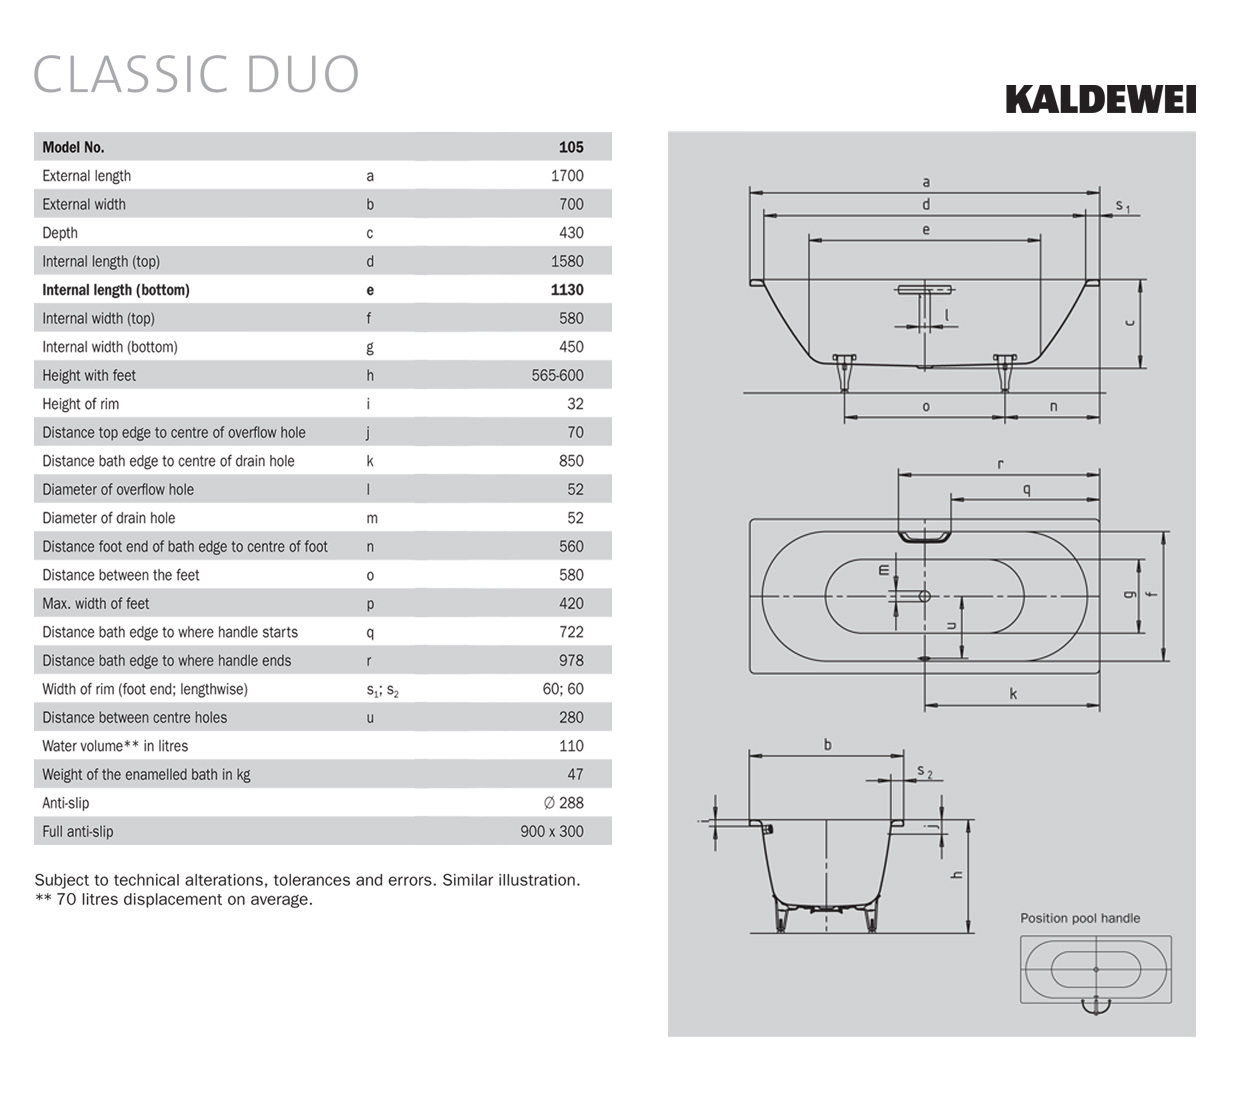 kaldewei classic duo 105 steel bath 1700 x 700mm steel bath. Black Bedroom Furniture Sets. Home Design Ideas